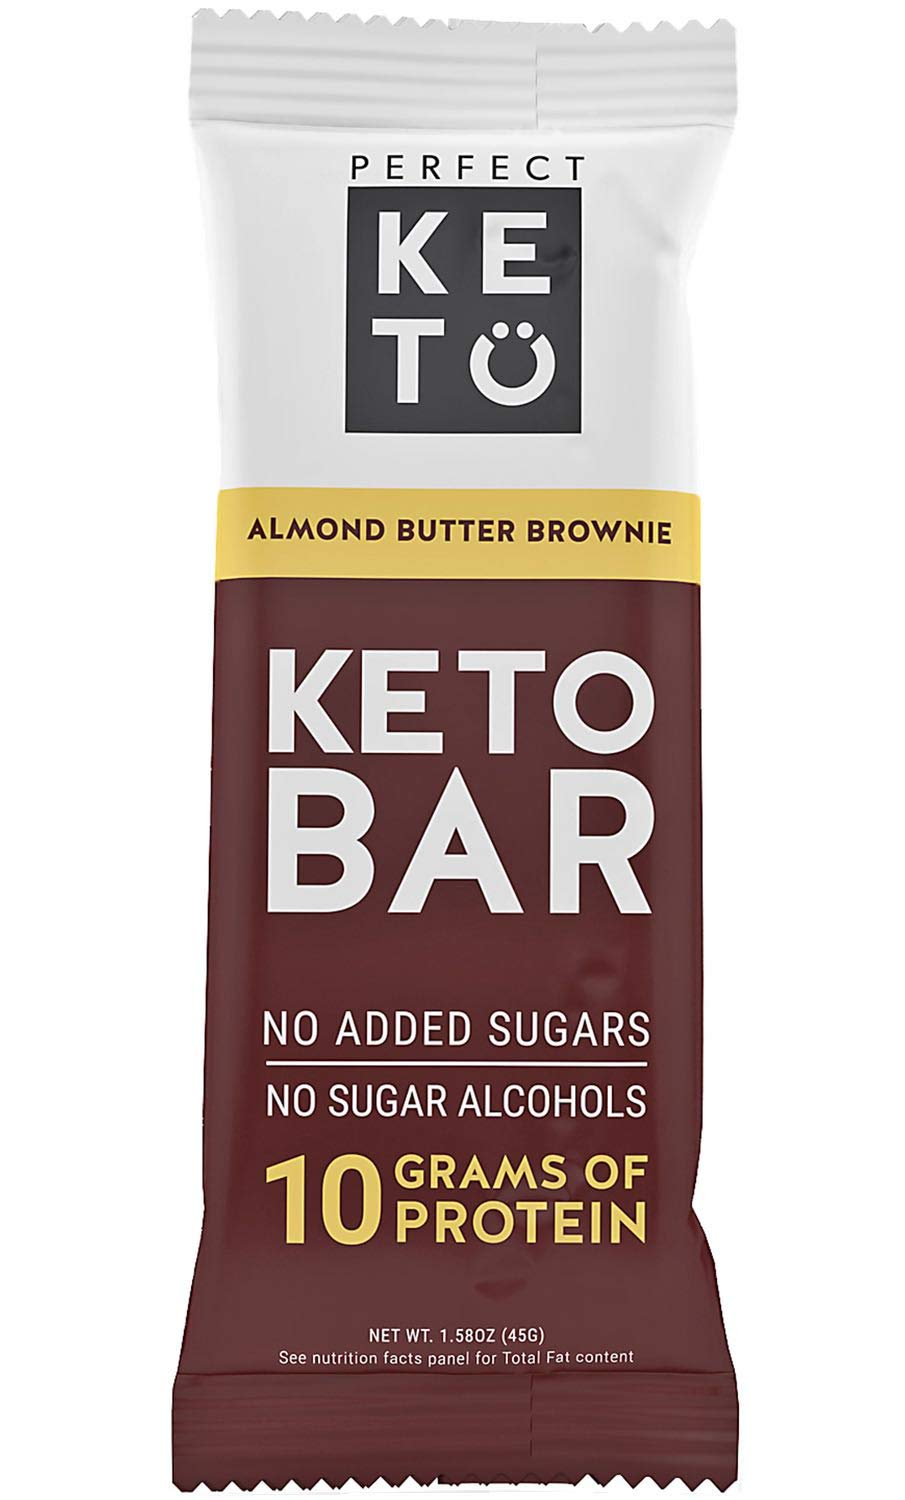 New! Perfect Keto Bar, Almond and Cacao Butter, Keto Snacks (12 Count), 3g net of Carbs, No Added Sugar. 10g of Protein, Coconut Oil, and Collagen, with a Touch of sea Salt and stevia.